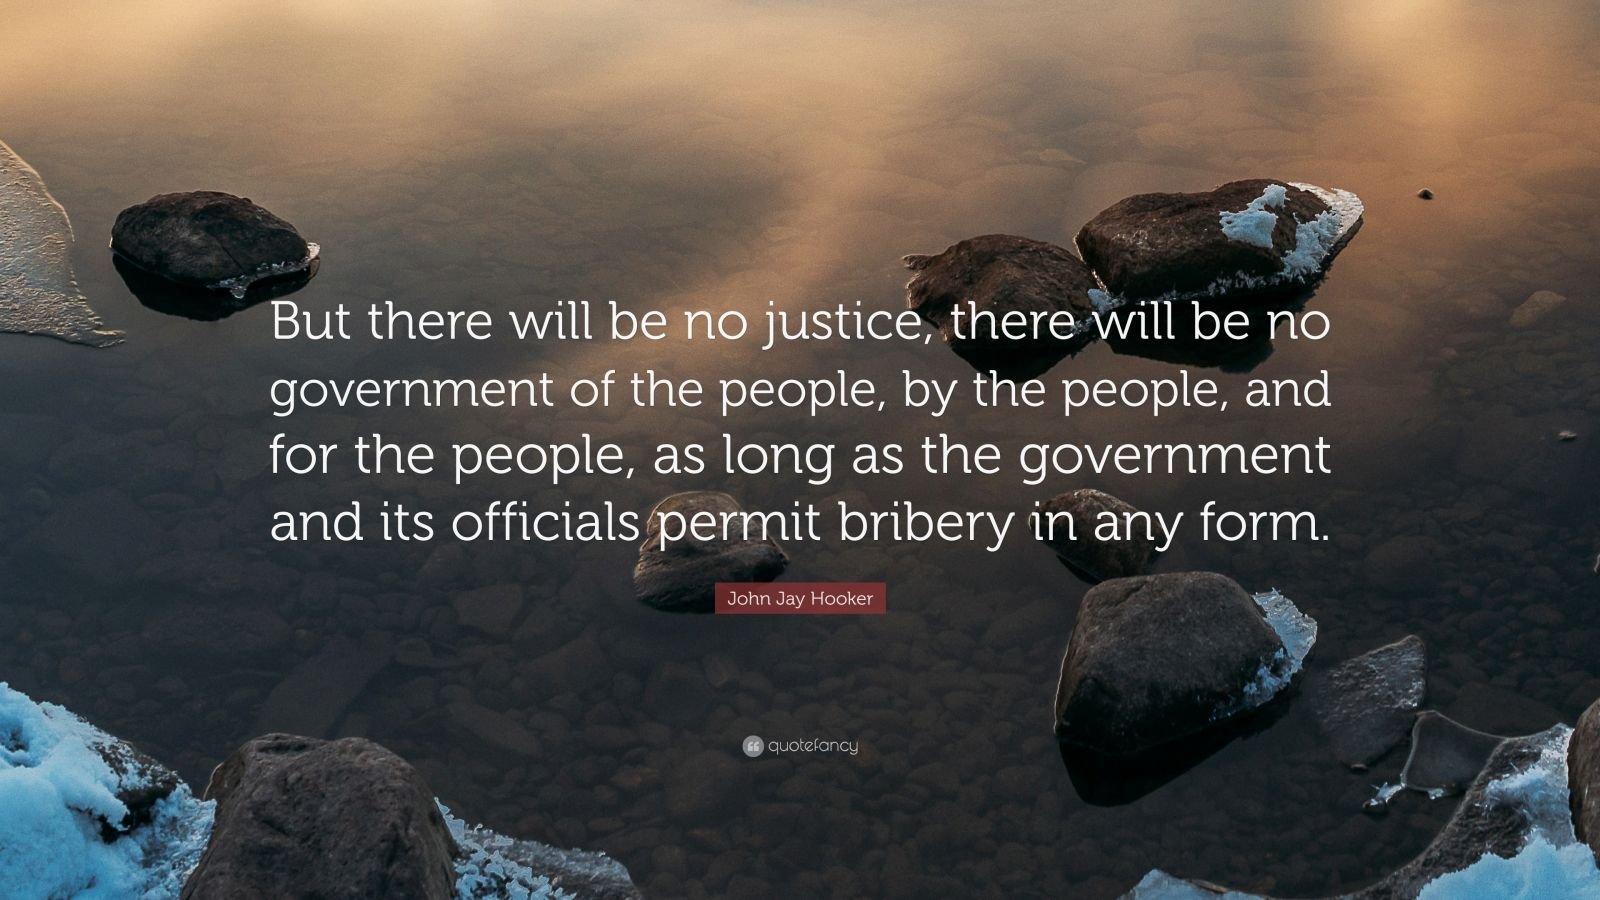 """John Jay Hooker Quote: """"But there will be no justice, there will be no government of the people, by the people, and for the people, as long as the government and its officials permit bribery in any form."""""""